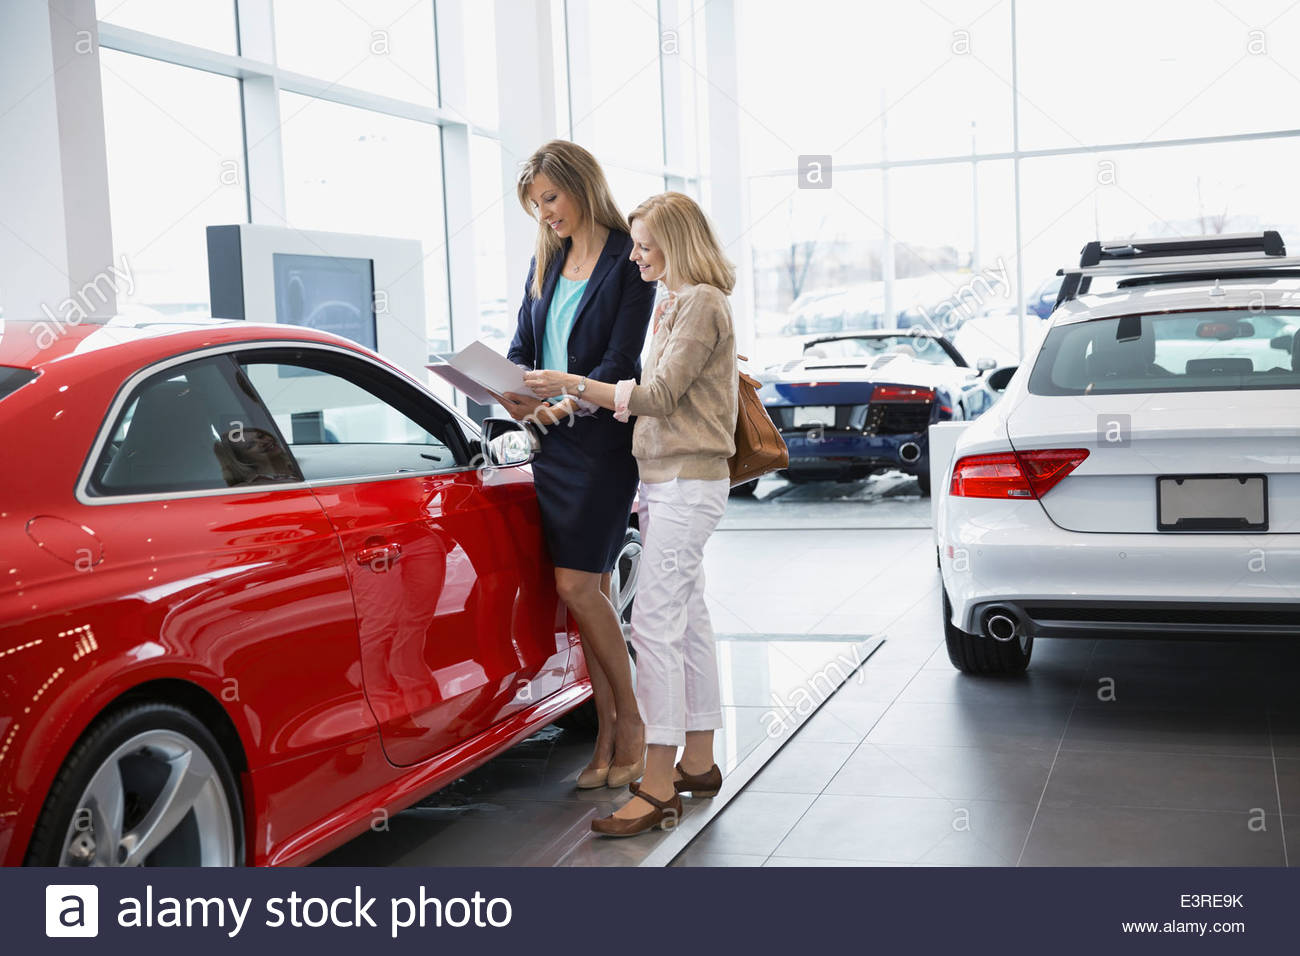 Saleswoman showing woman brochure in car dealership showroom - Stock Image